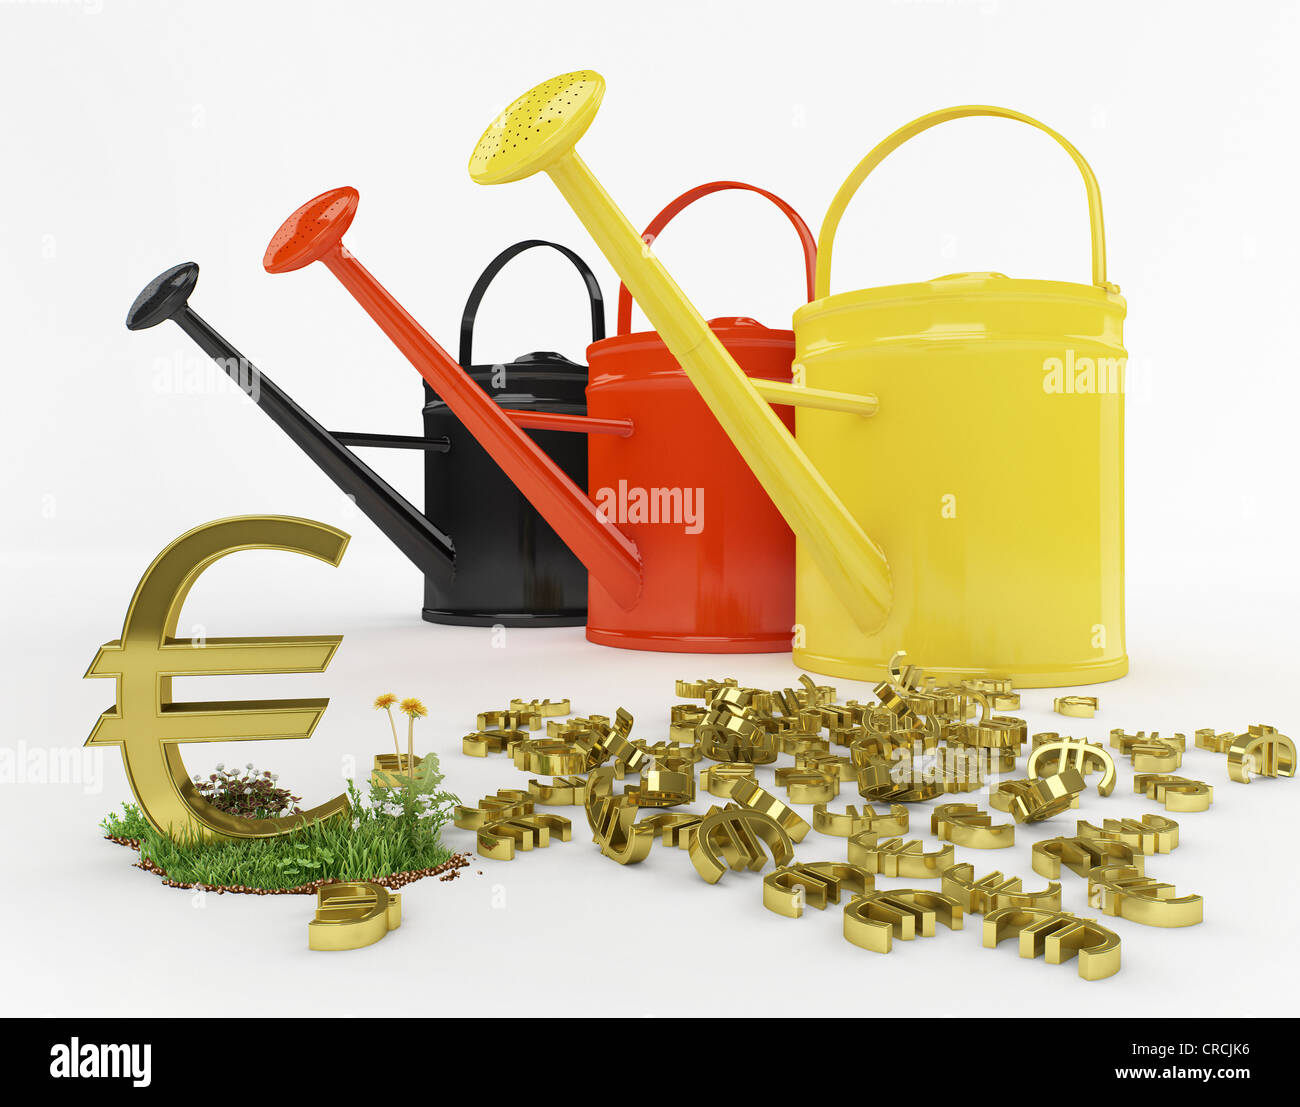 Watering Cans In The German National Colours Beside A Euro Symbol